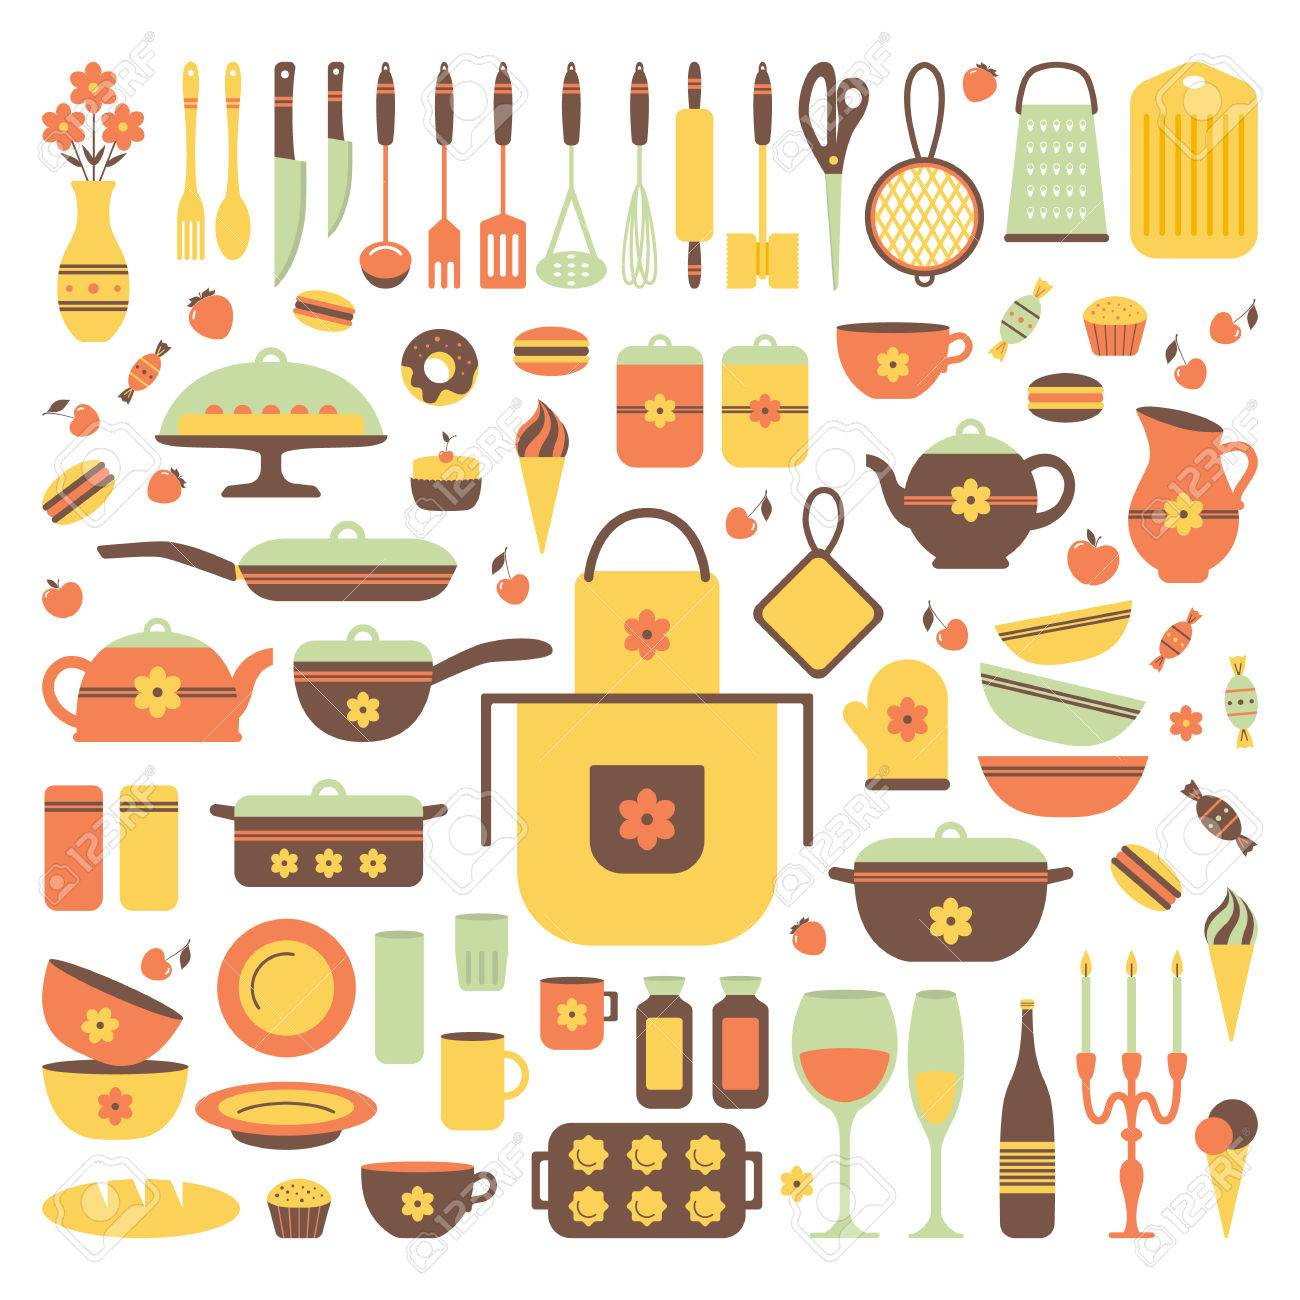 Kitchen Utensils Background set of kitchen utensils and food, isolated objects. cookware